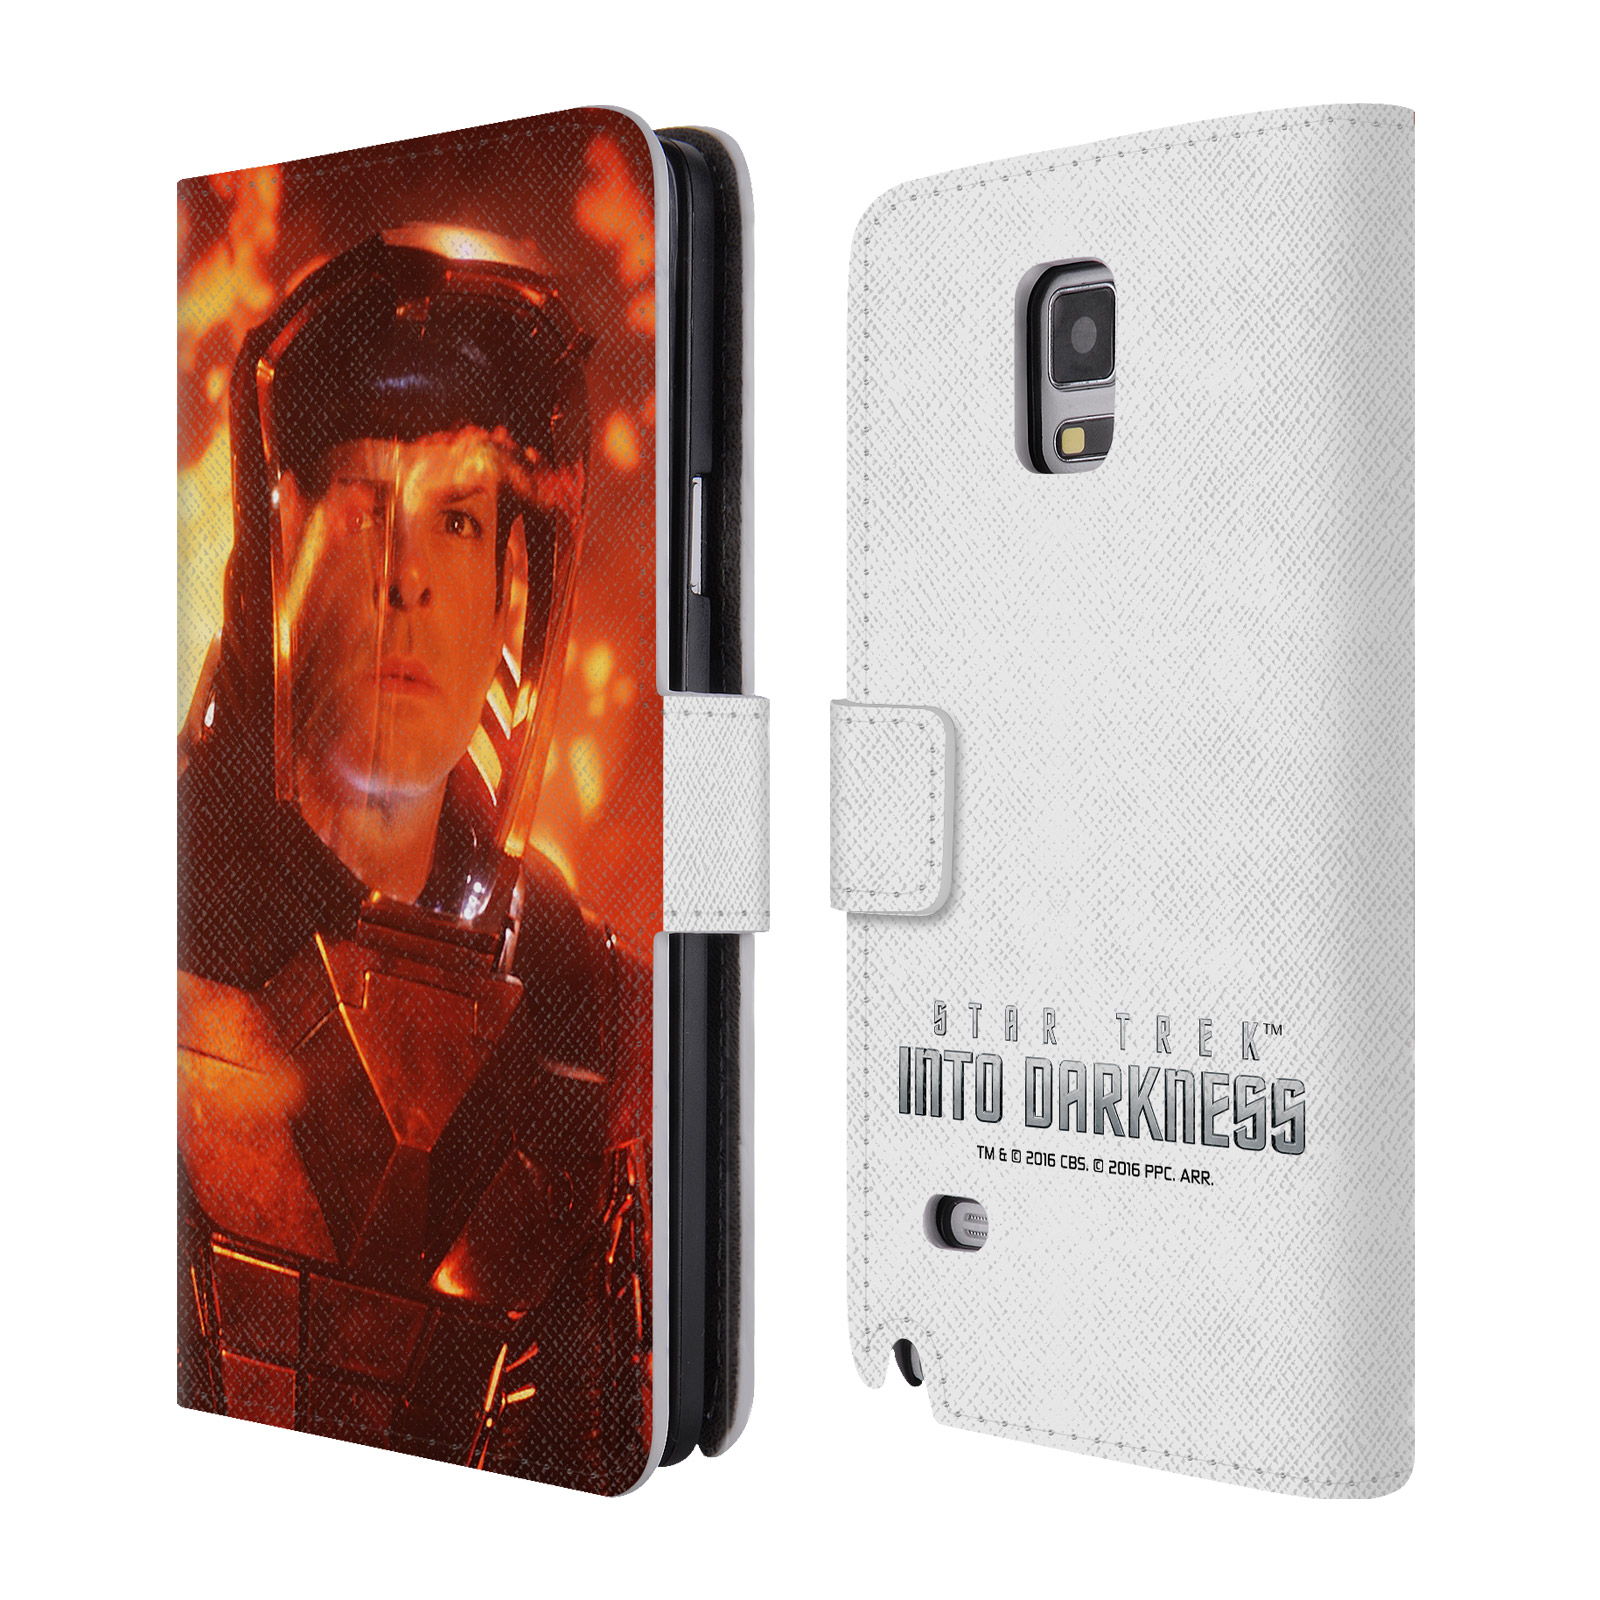 OFFICIAL STAR TREK MOVIE STILLS INTO DARKNESS XII LEATHER BOOK WALLET CASE COVER FOR SAMSUNG PHONES 1